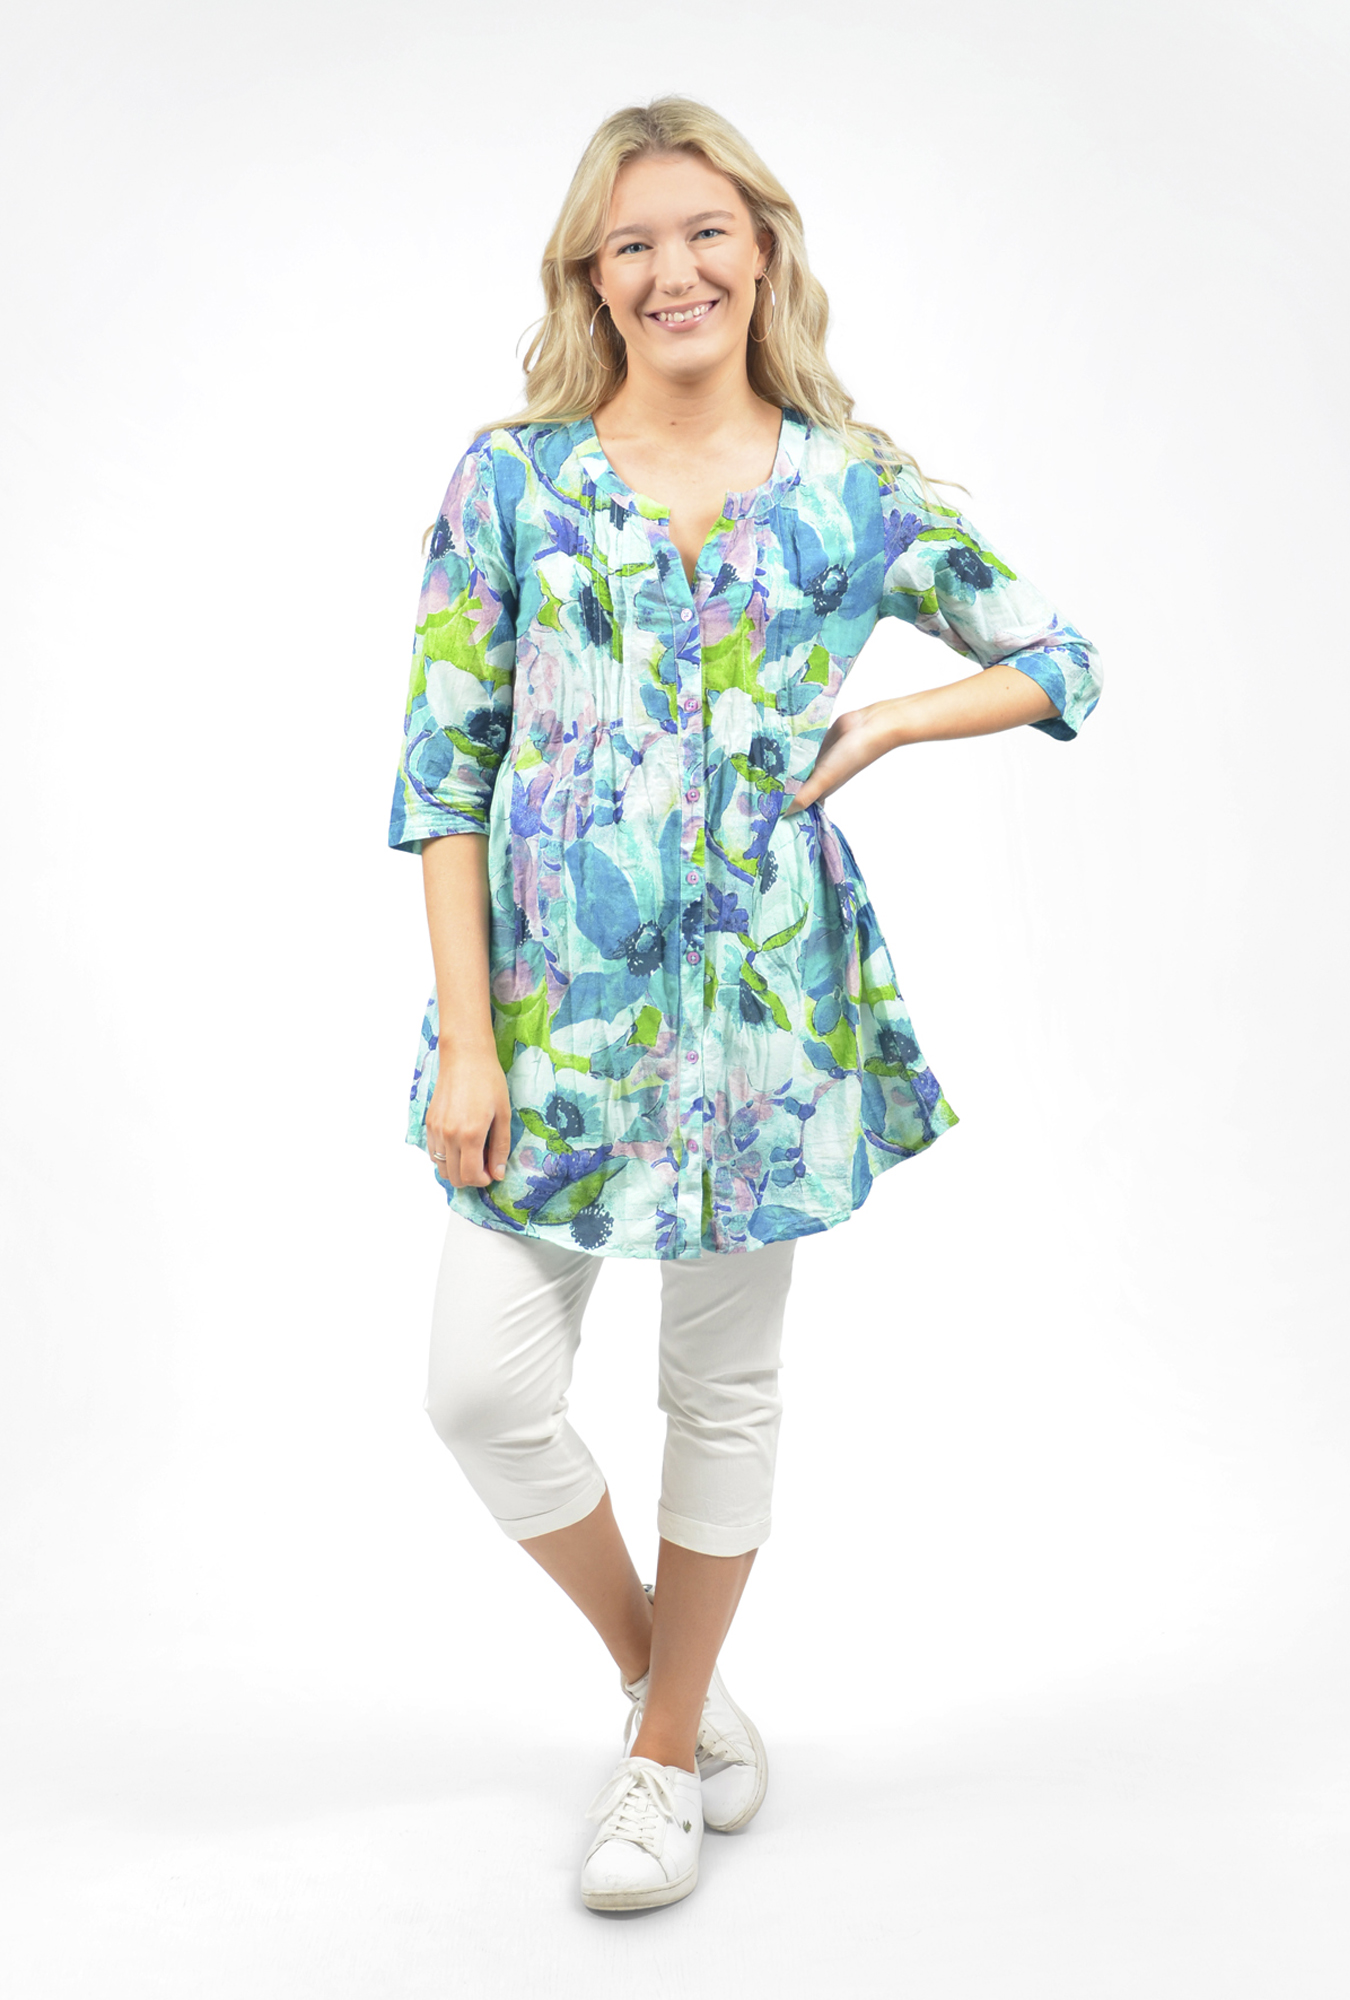 Rosa Tunic in Watercolour Green and Blue